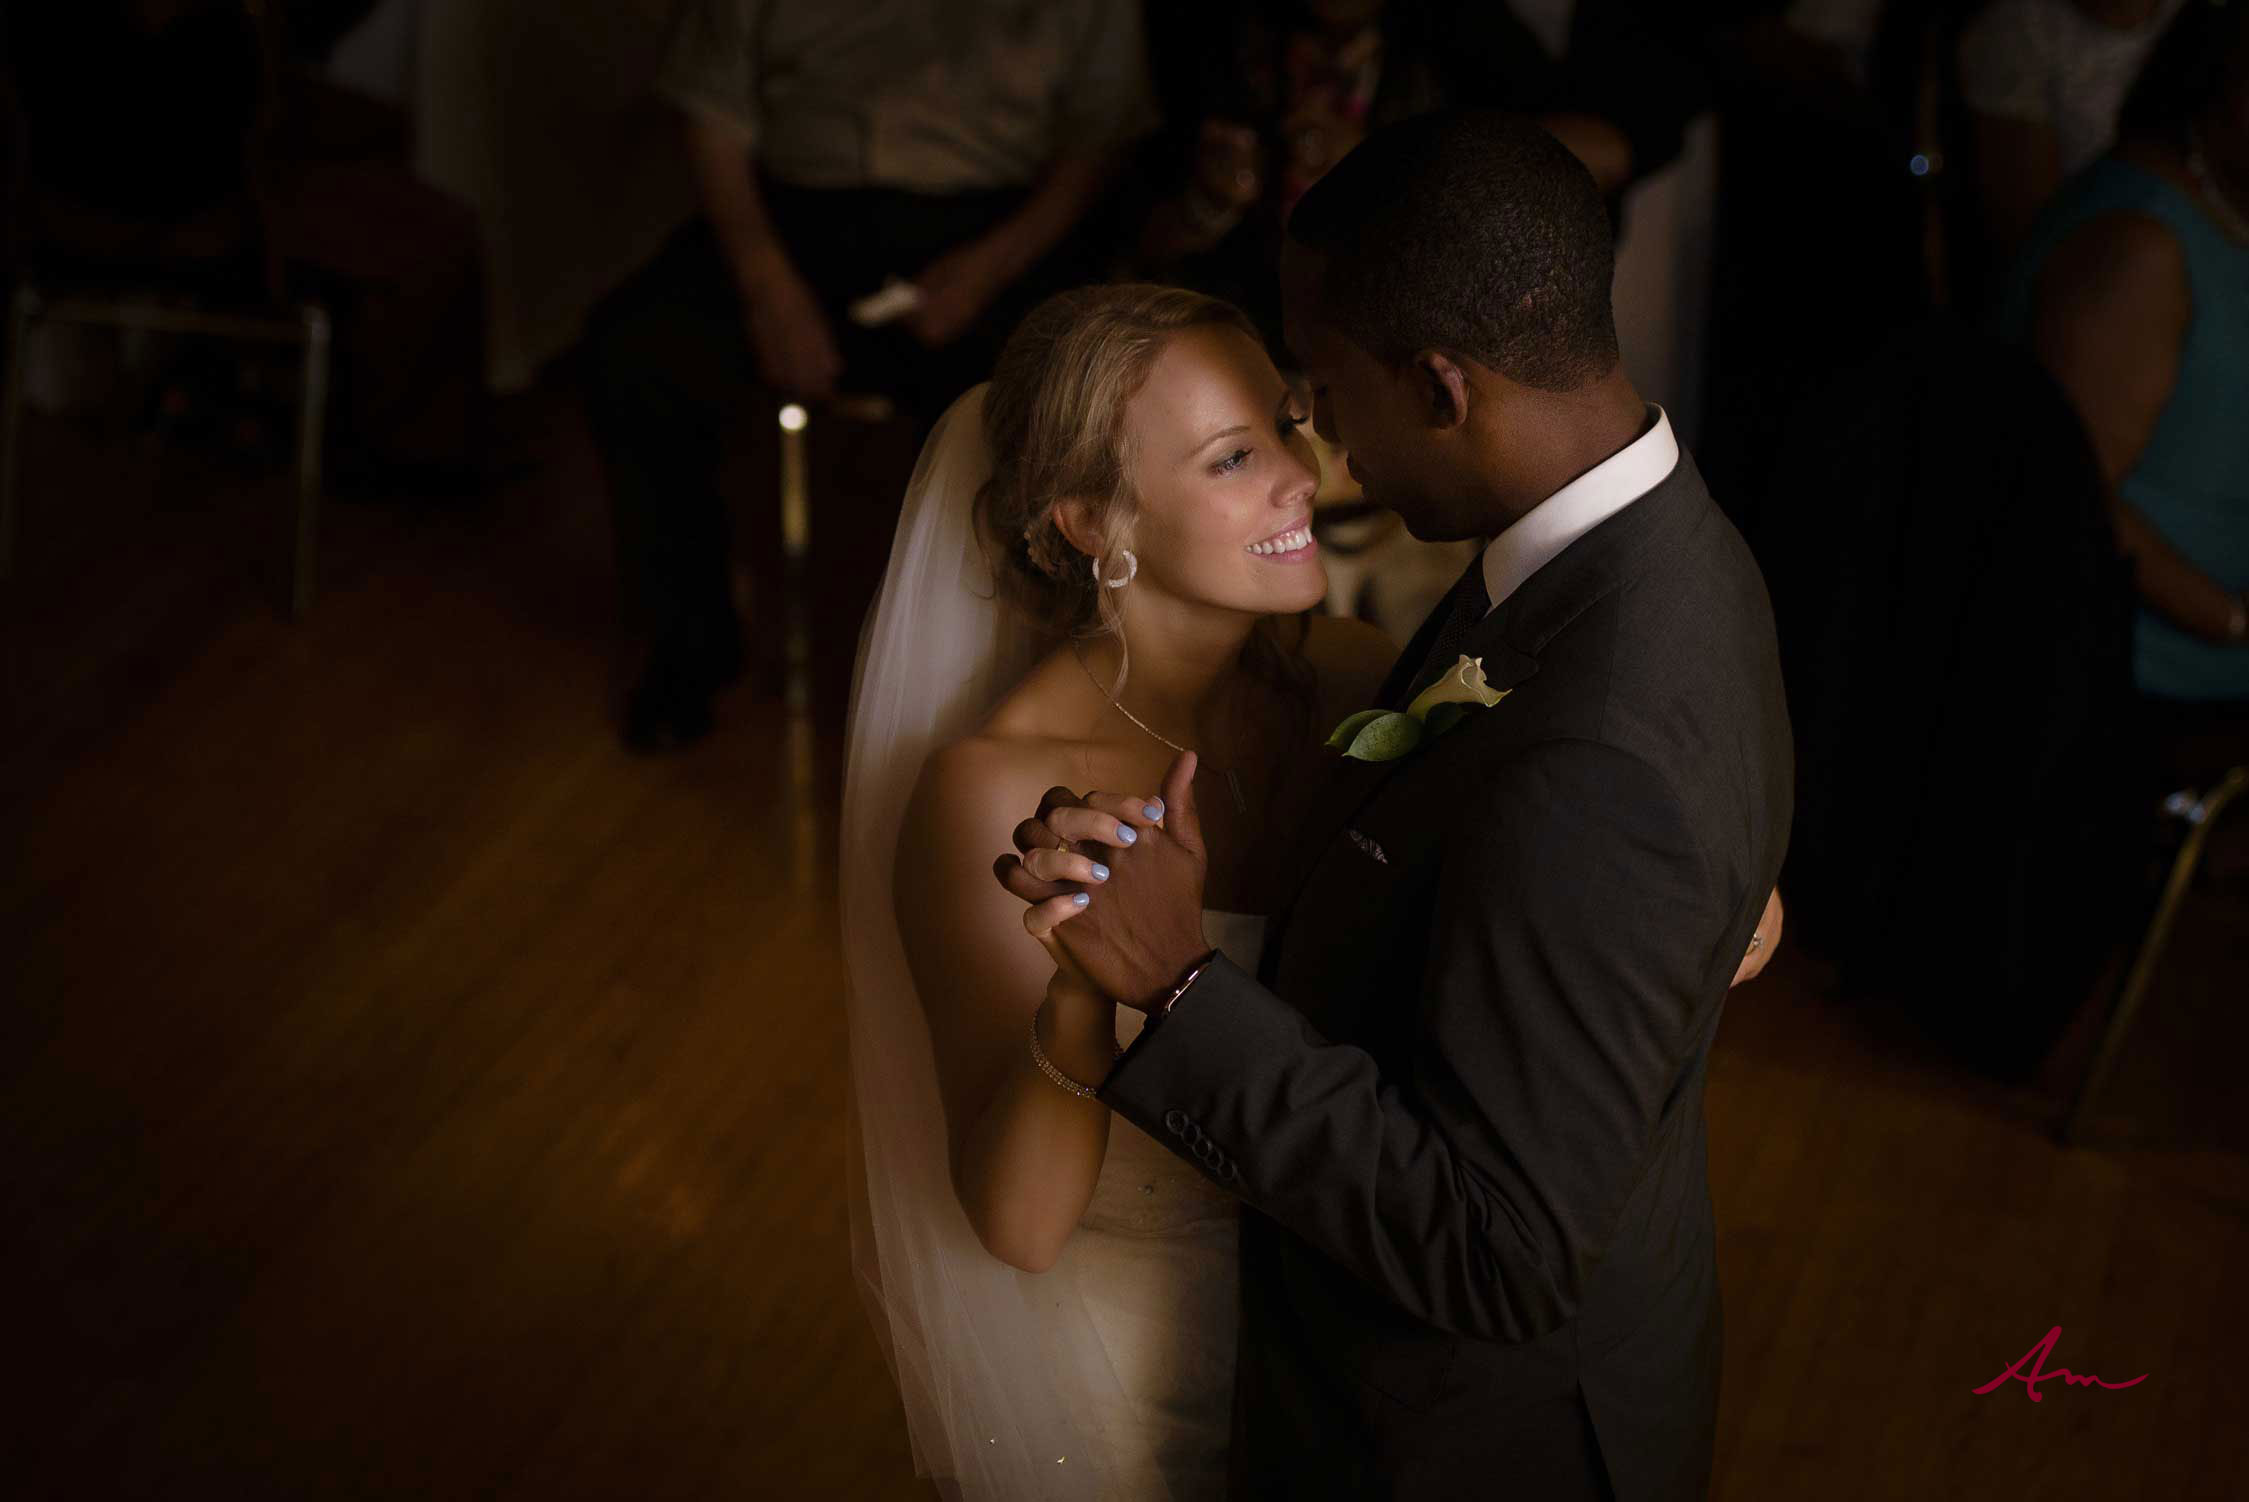 Liscombe-wedding-dance-bride-smiling.jpg